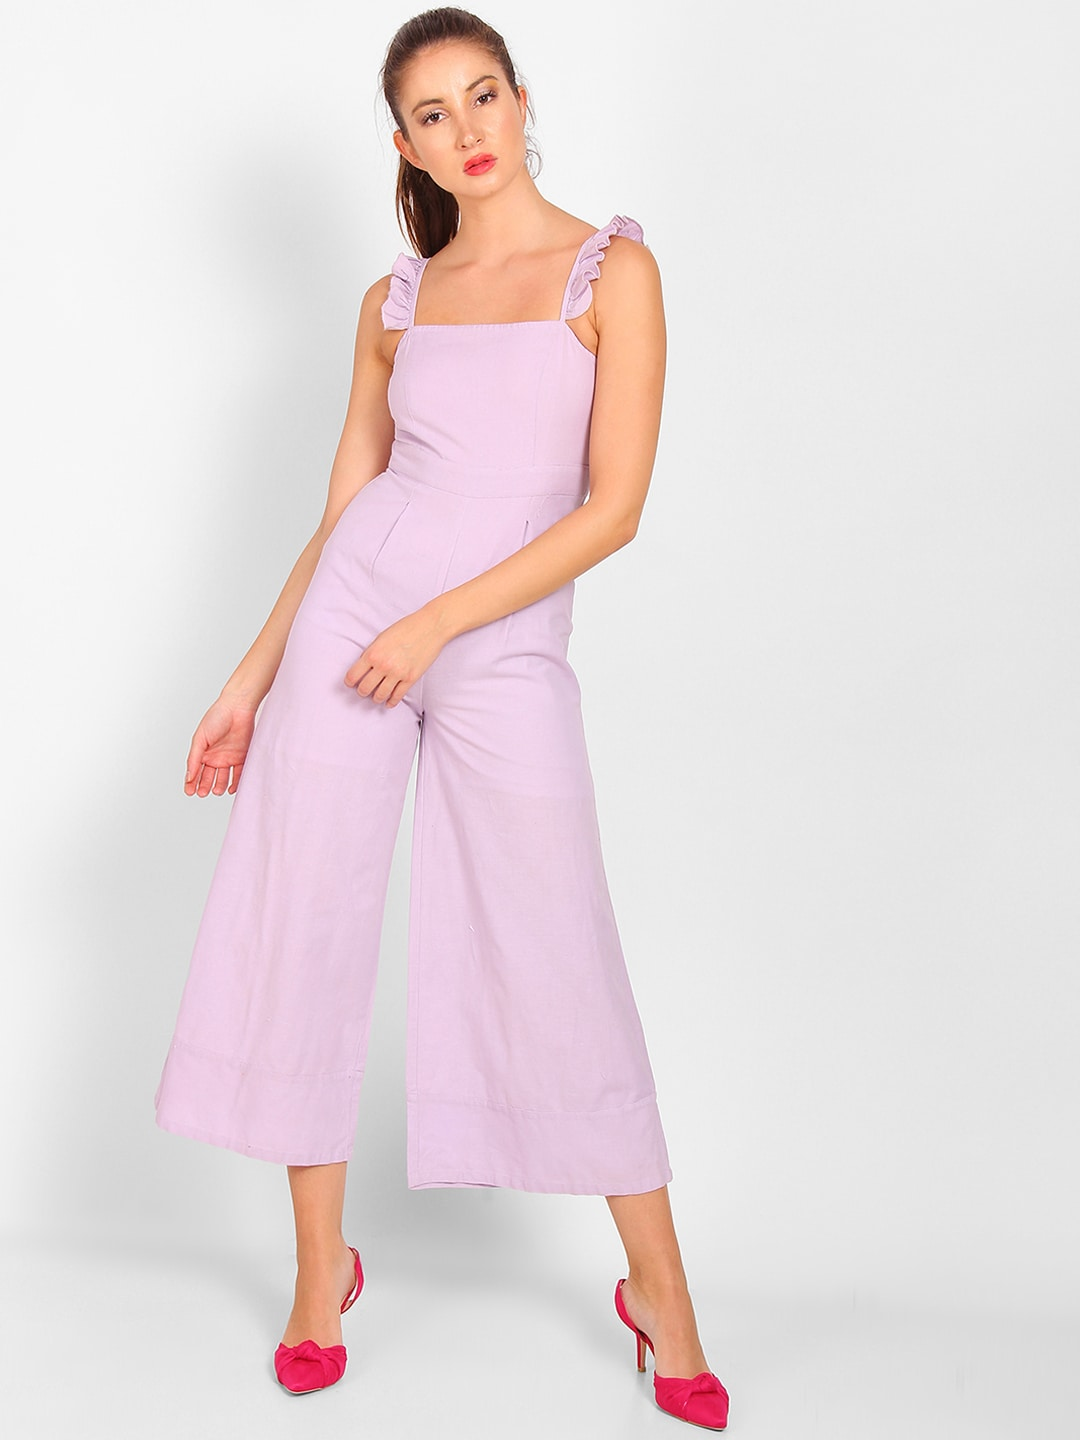 79da69e3f89 Linen Jumpsuit - Buy Linen Jumpsuit online in India